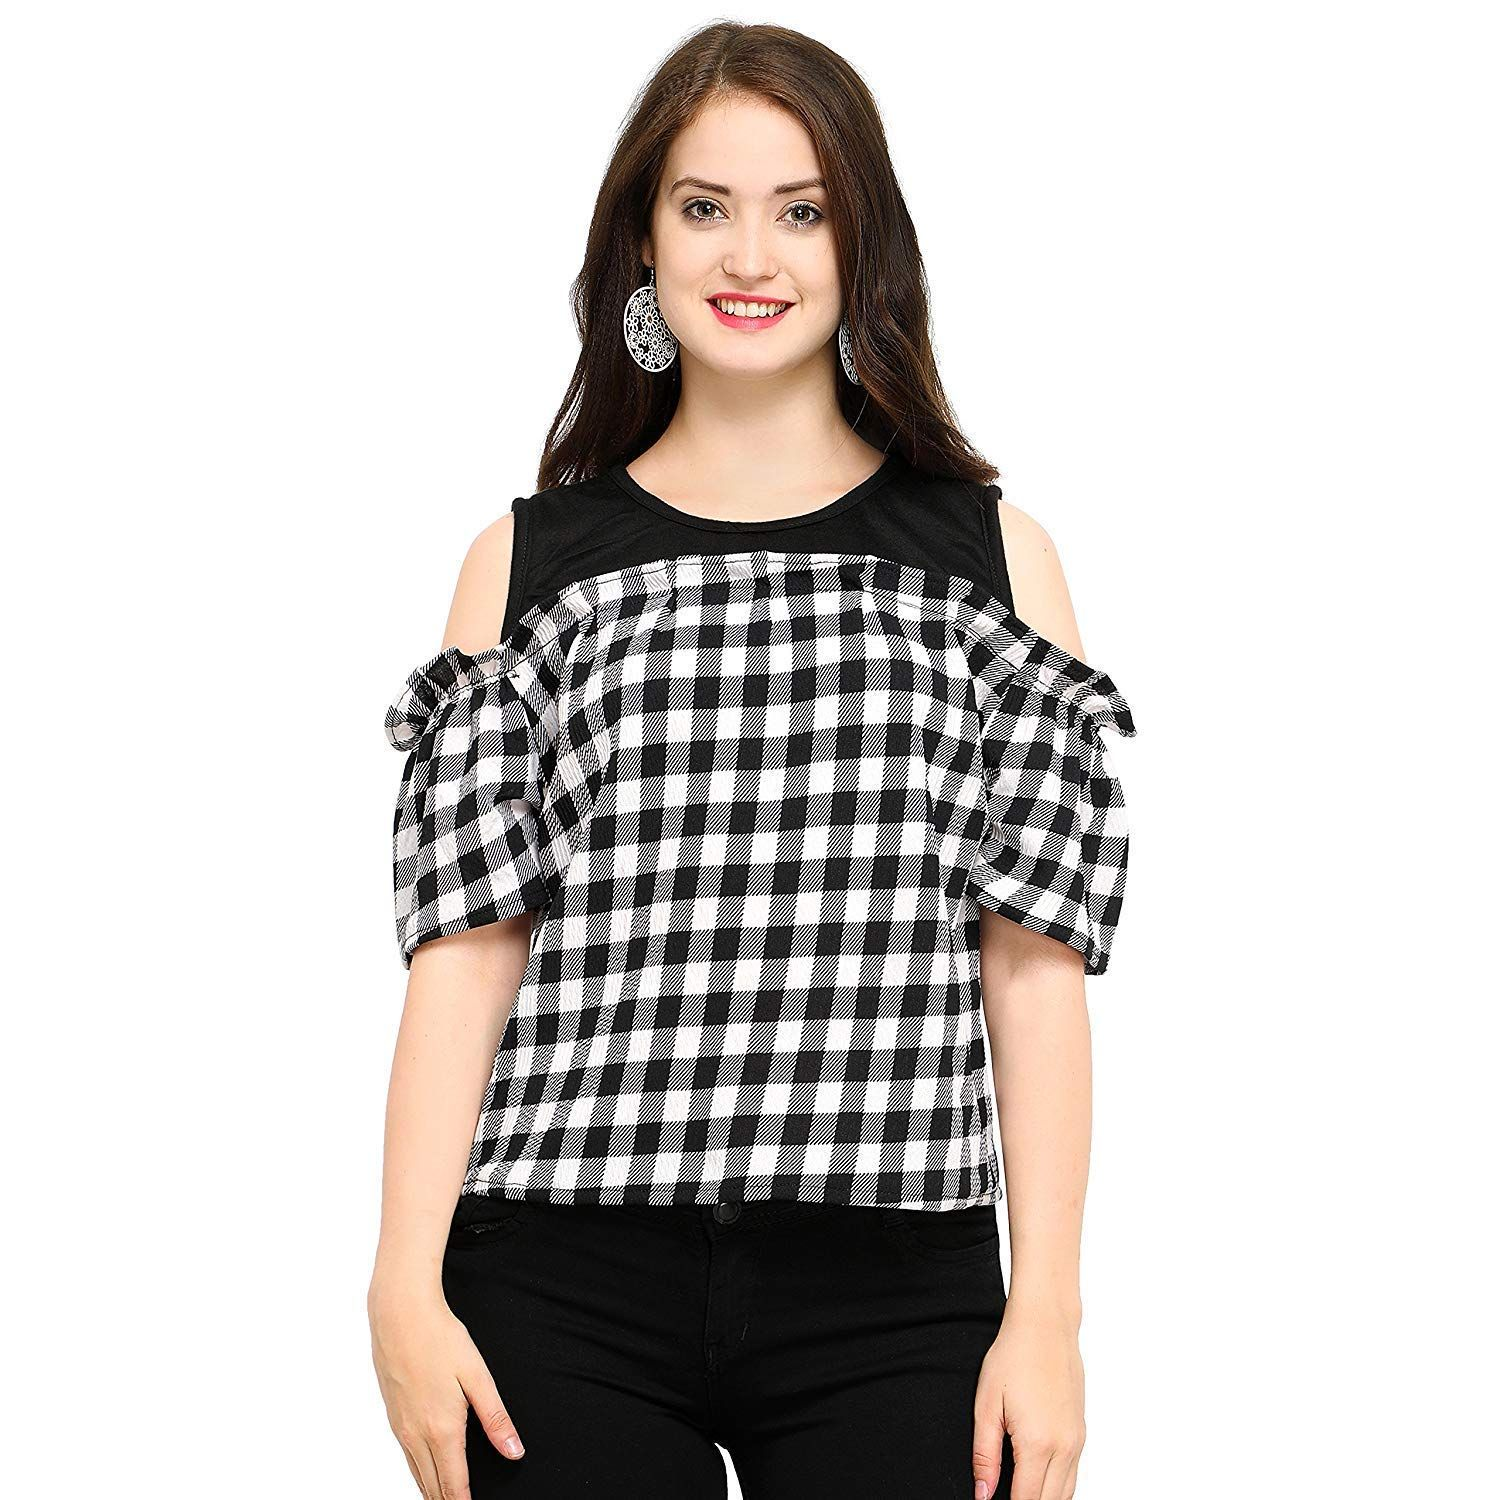 45e2ceecee4d06 #Sale #Rs 199. #Tops #for #Women #Under #Girls #New #Fashion #Western  #Stylish #top #wear #Ladies #Long #Casual #Off #Shoulder #Party #Latest  #Trendy #Girl ...